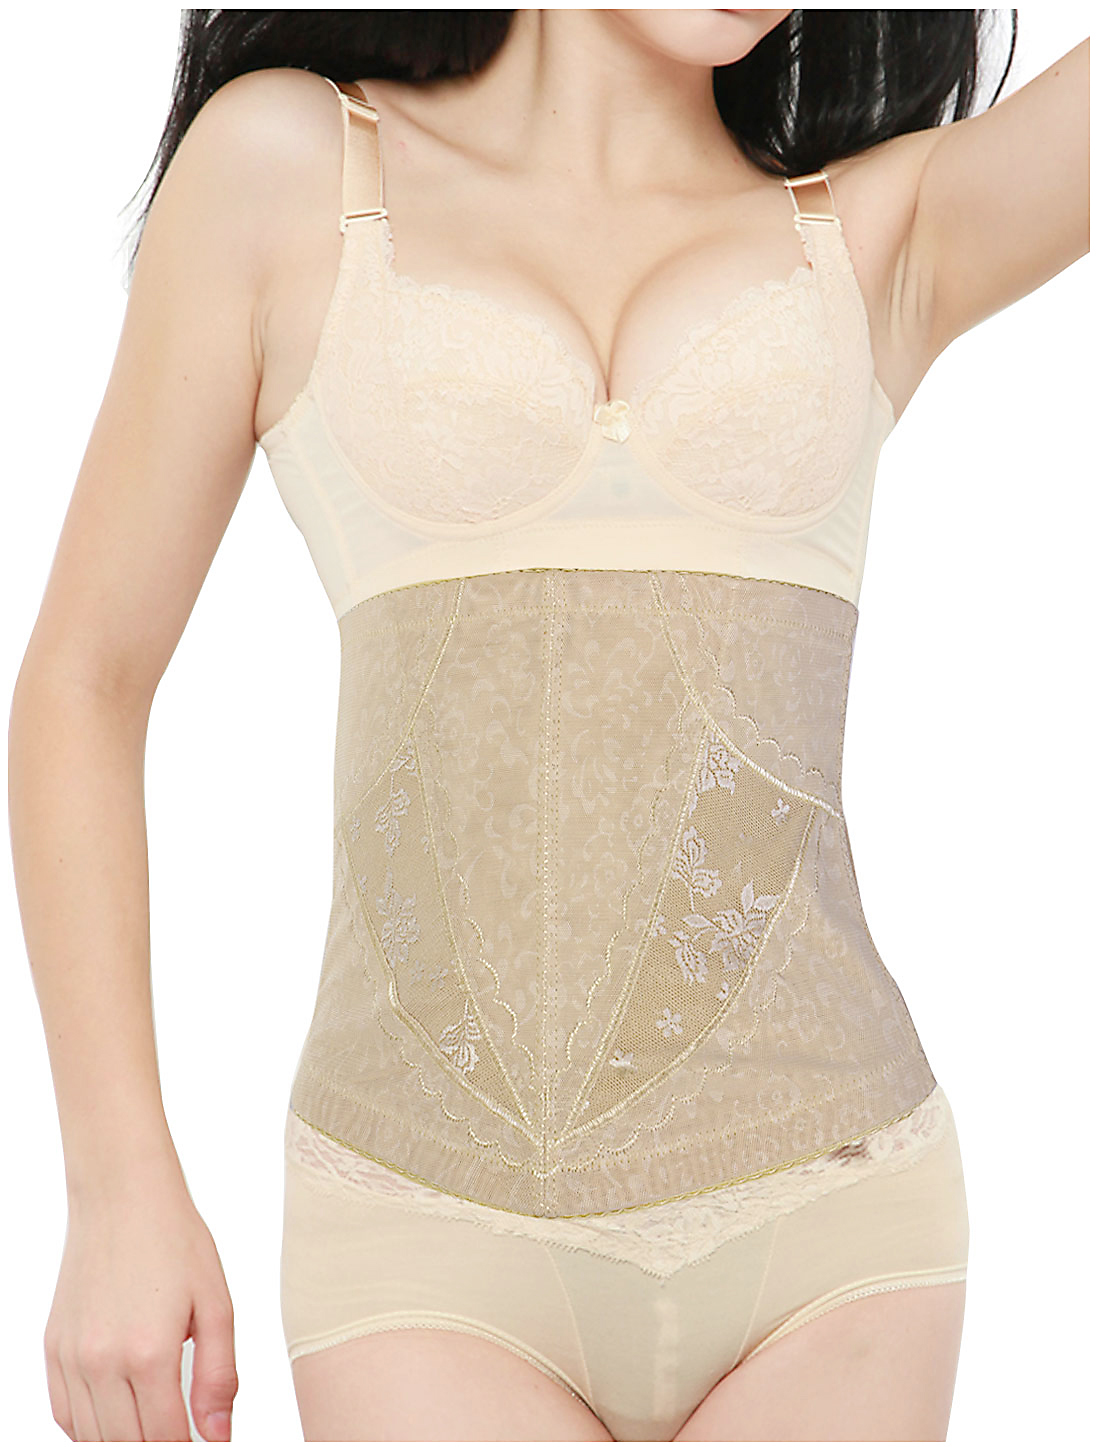 Women Floral Pattern Elastic Shapewear Slimming Belt Corset Waist Cincher Flesh Color L